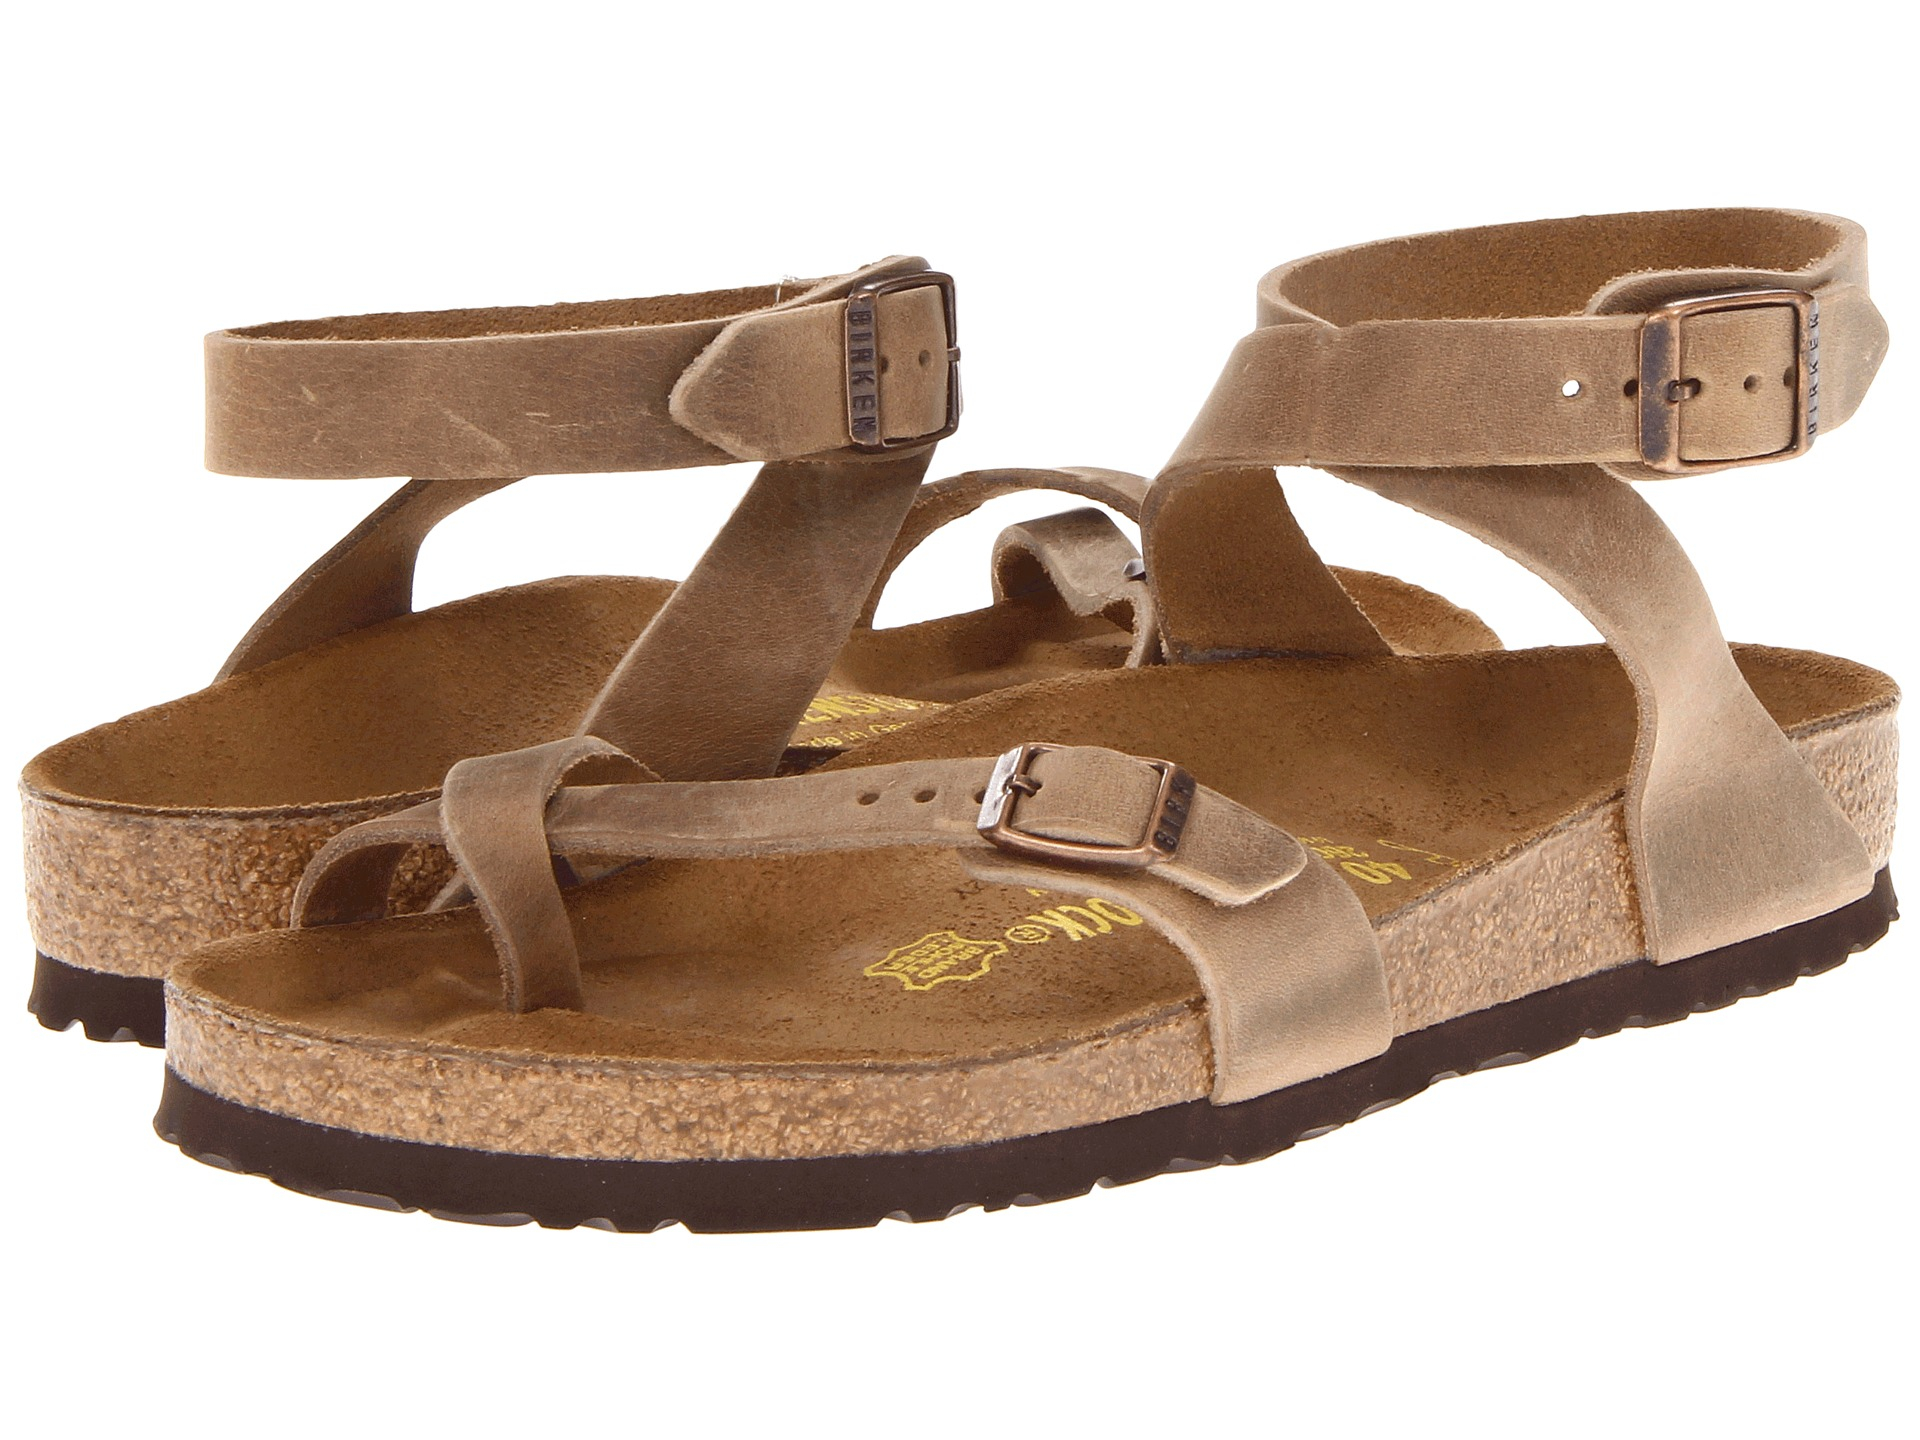 a3254c88ff21e3 Lyst - Birkenstock Yara Oiled Leather in Brown